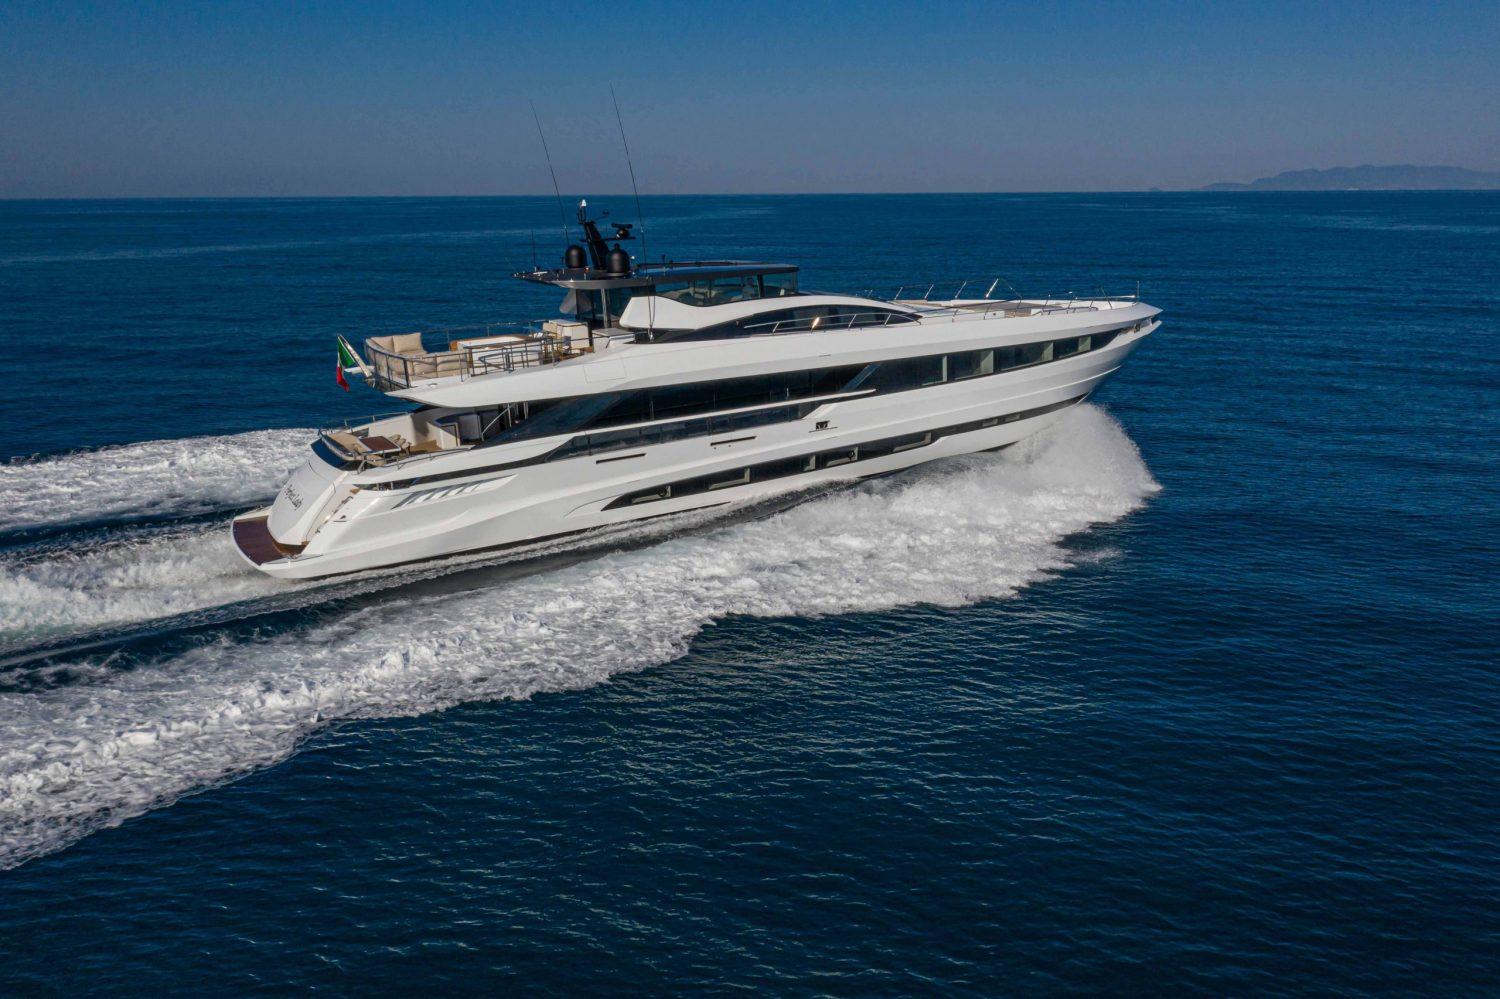 Get To Know 2020's Fort Lauderdale International Boat Show fort lauderdale international boat show Get To Know 2020's Fort Lauderdale International Boat Show flibs 2020 event guide 3 scaled